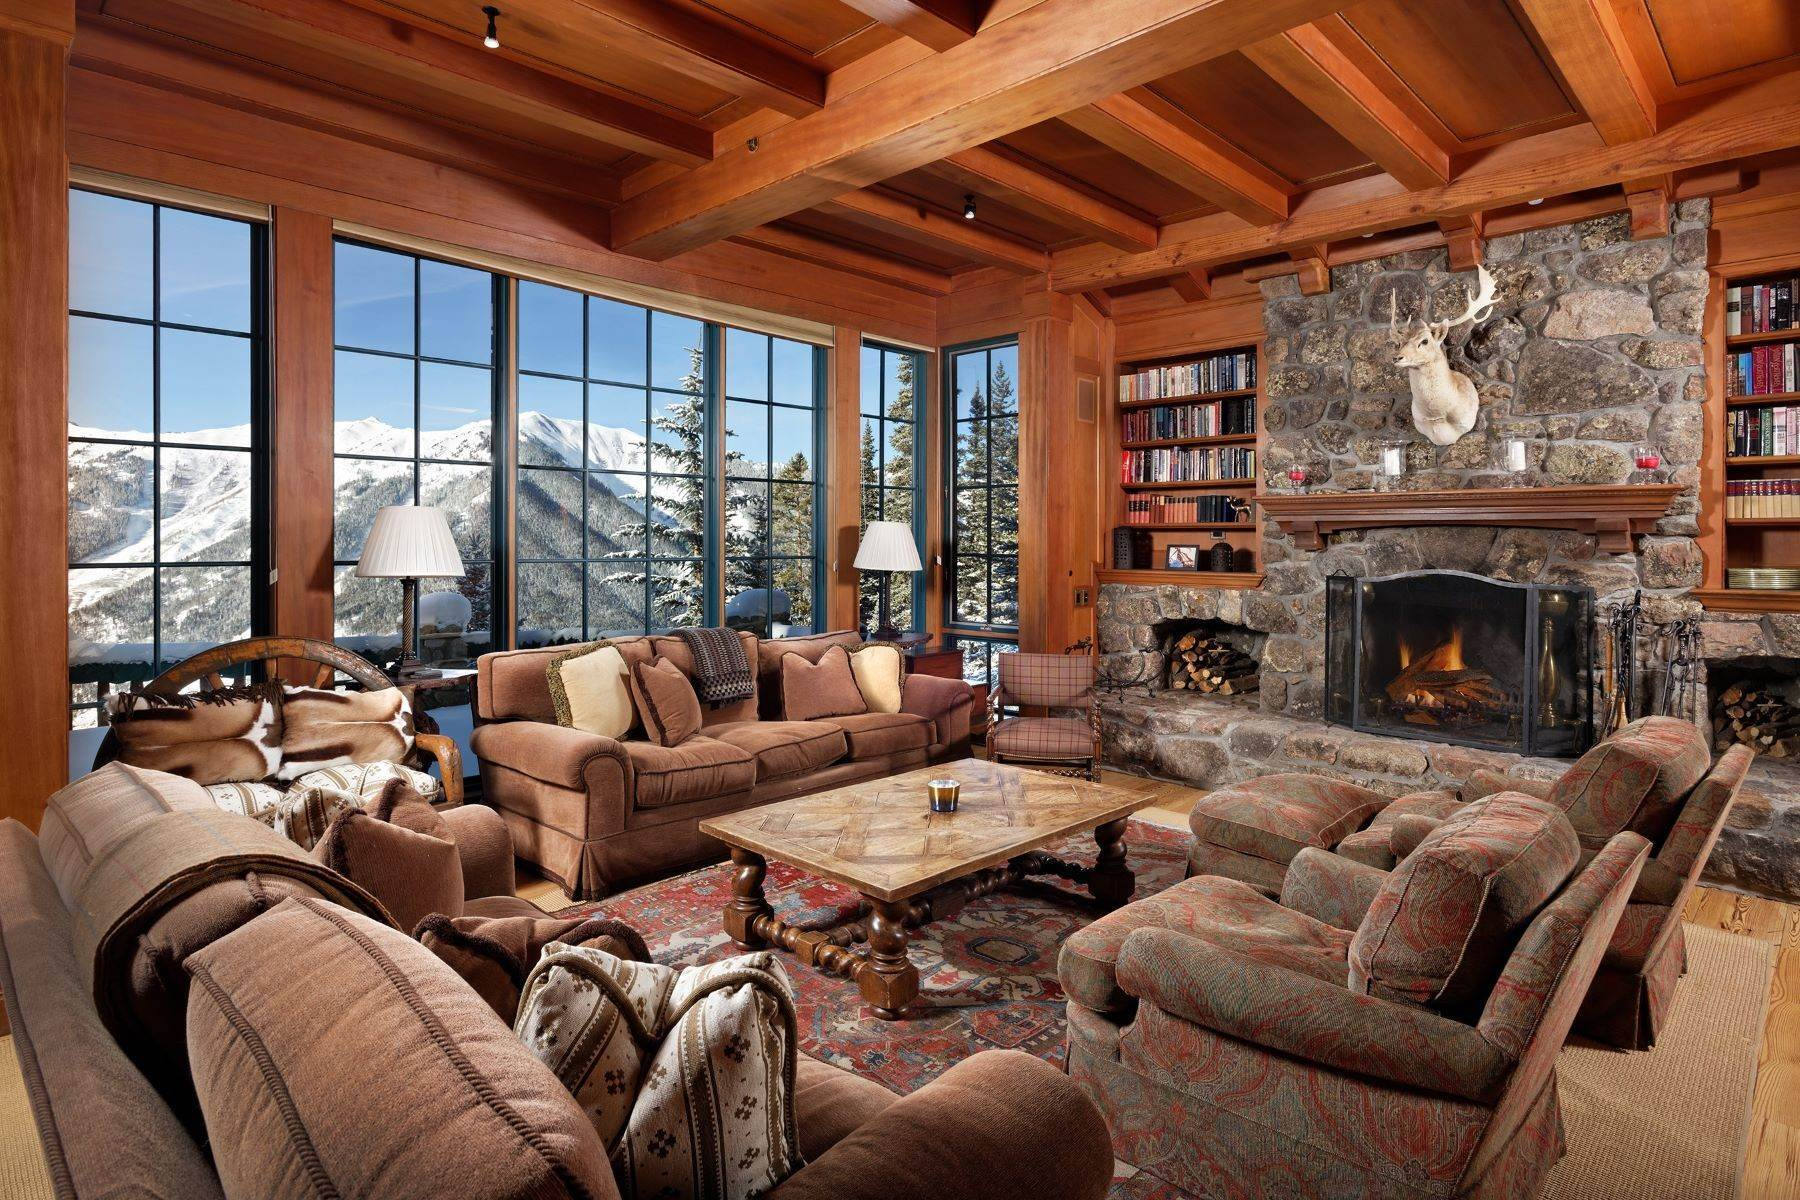 Single Family Homes for Sale at Aspen Mountain Chalet 3340, 4100, 4150 Midnight Mine Road Aspen, Colorado 81611 United States